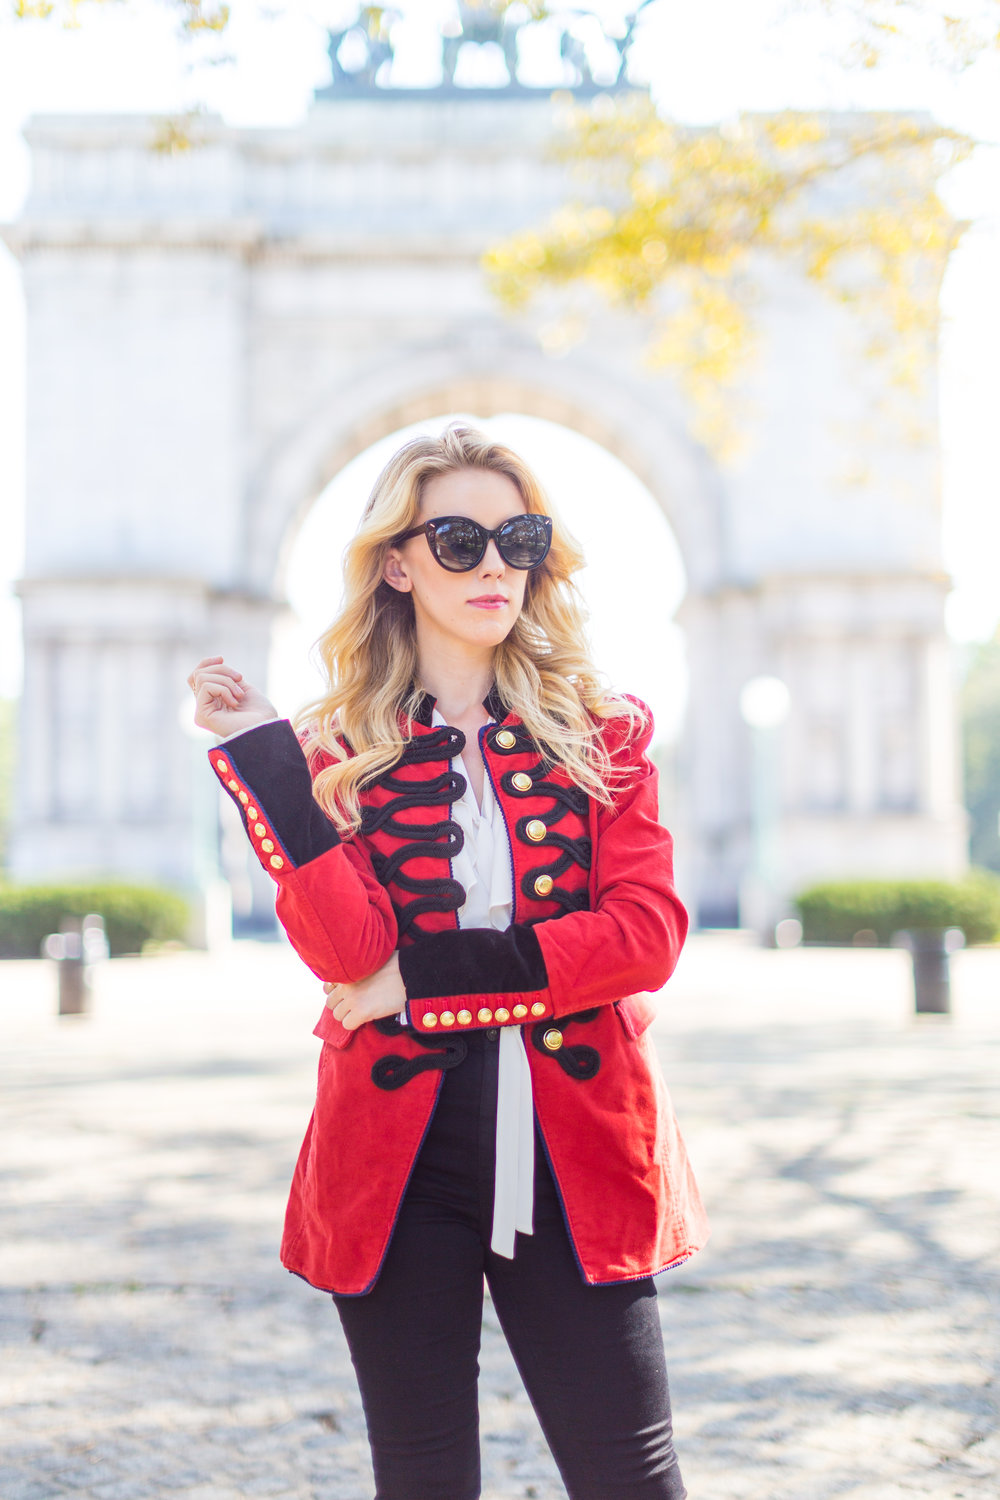 Fall Fashion Red Band Jacket Trendy-9.jpg